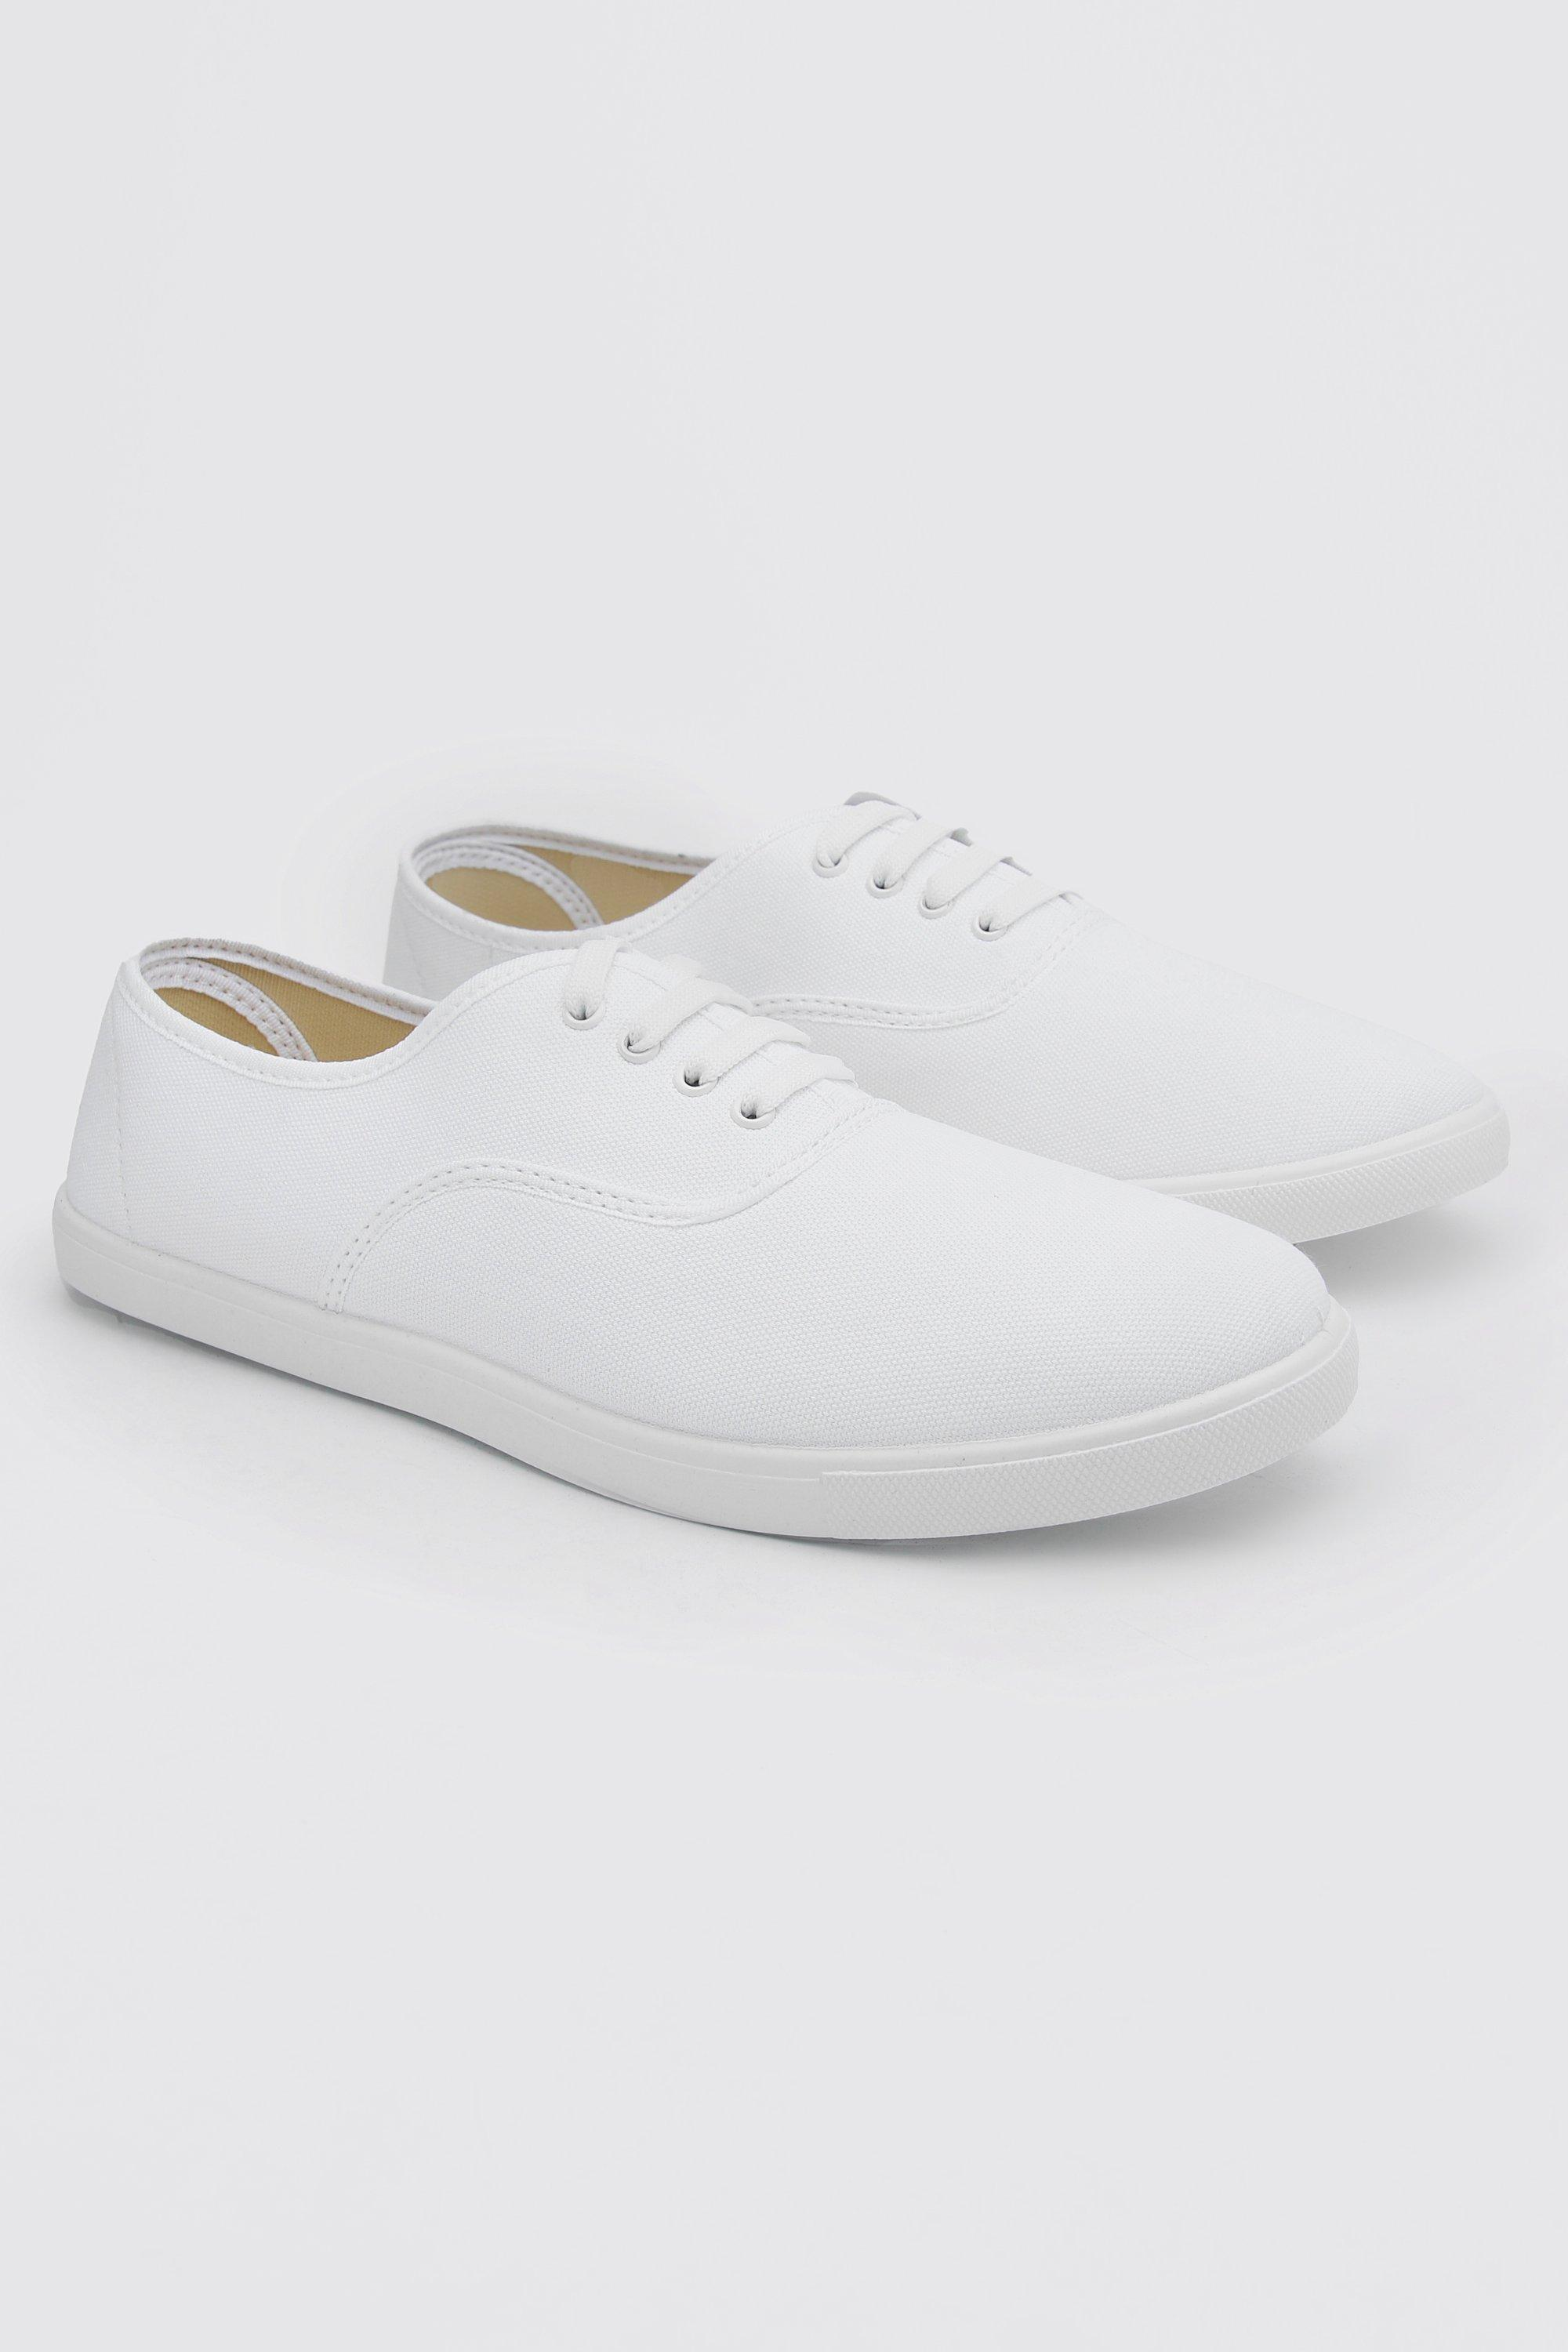 1940s UK and Europe Men's Clothing – WW2, Swing Dance, Goodwin Mens Basic Lace Up Plimsoll - White $7.00 AT vintagedancer.com